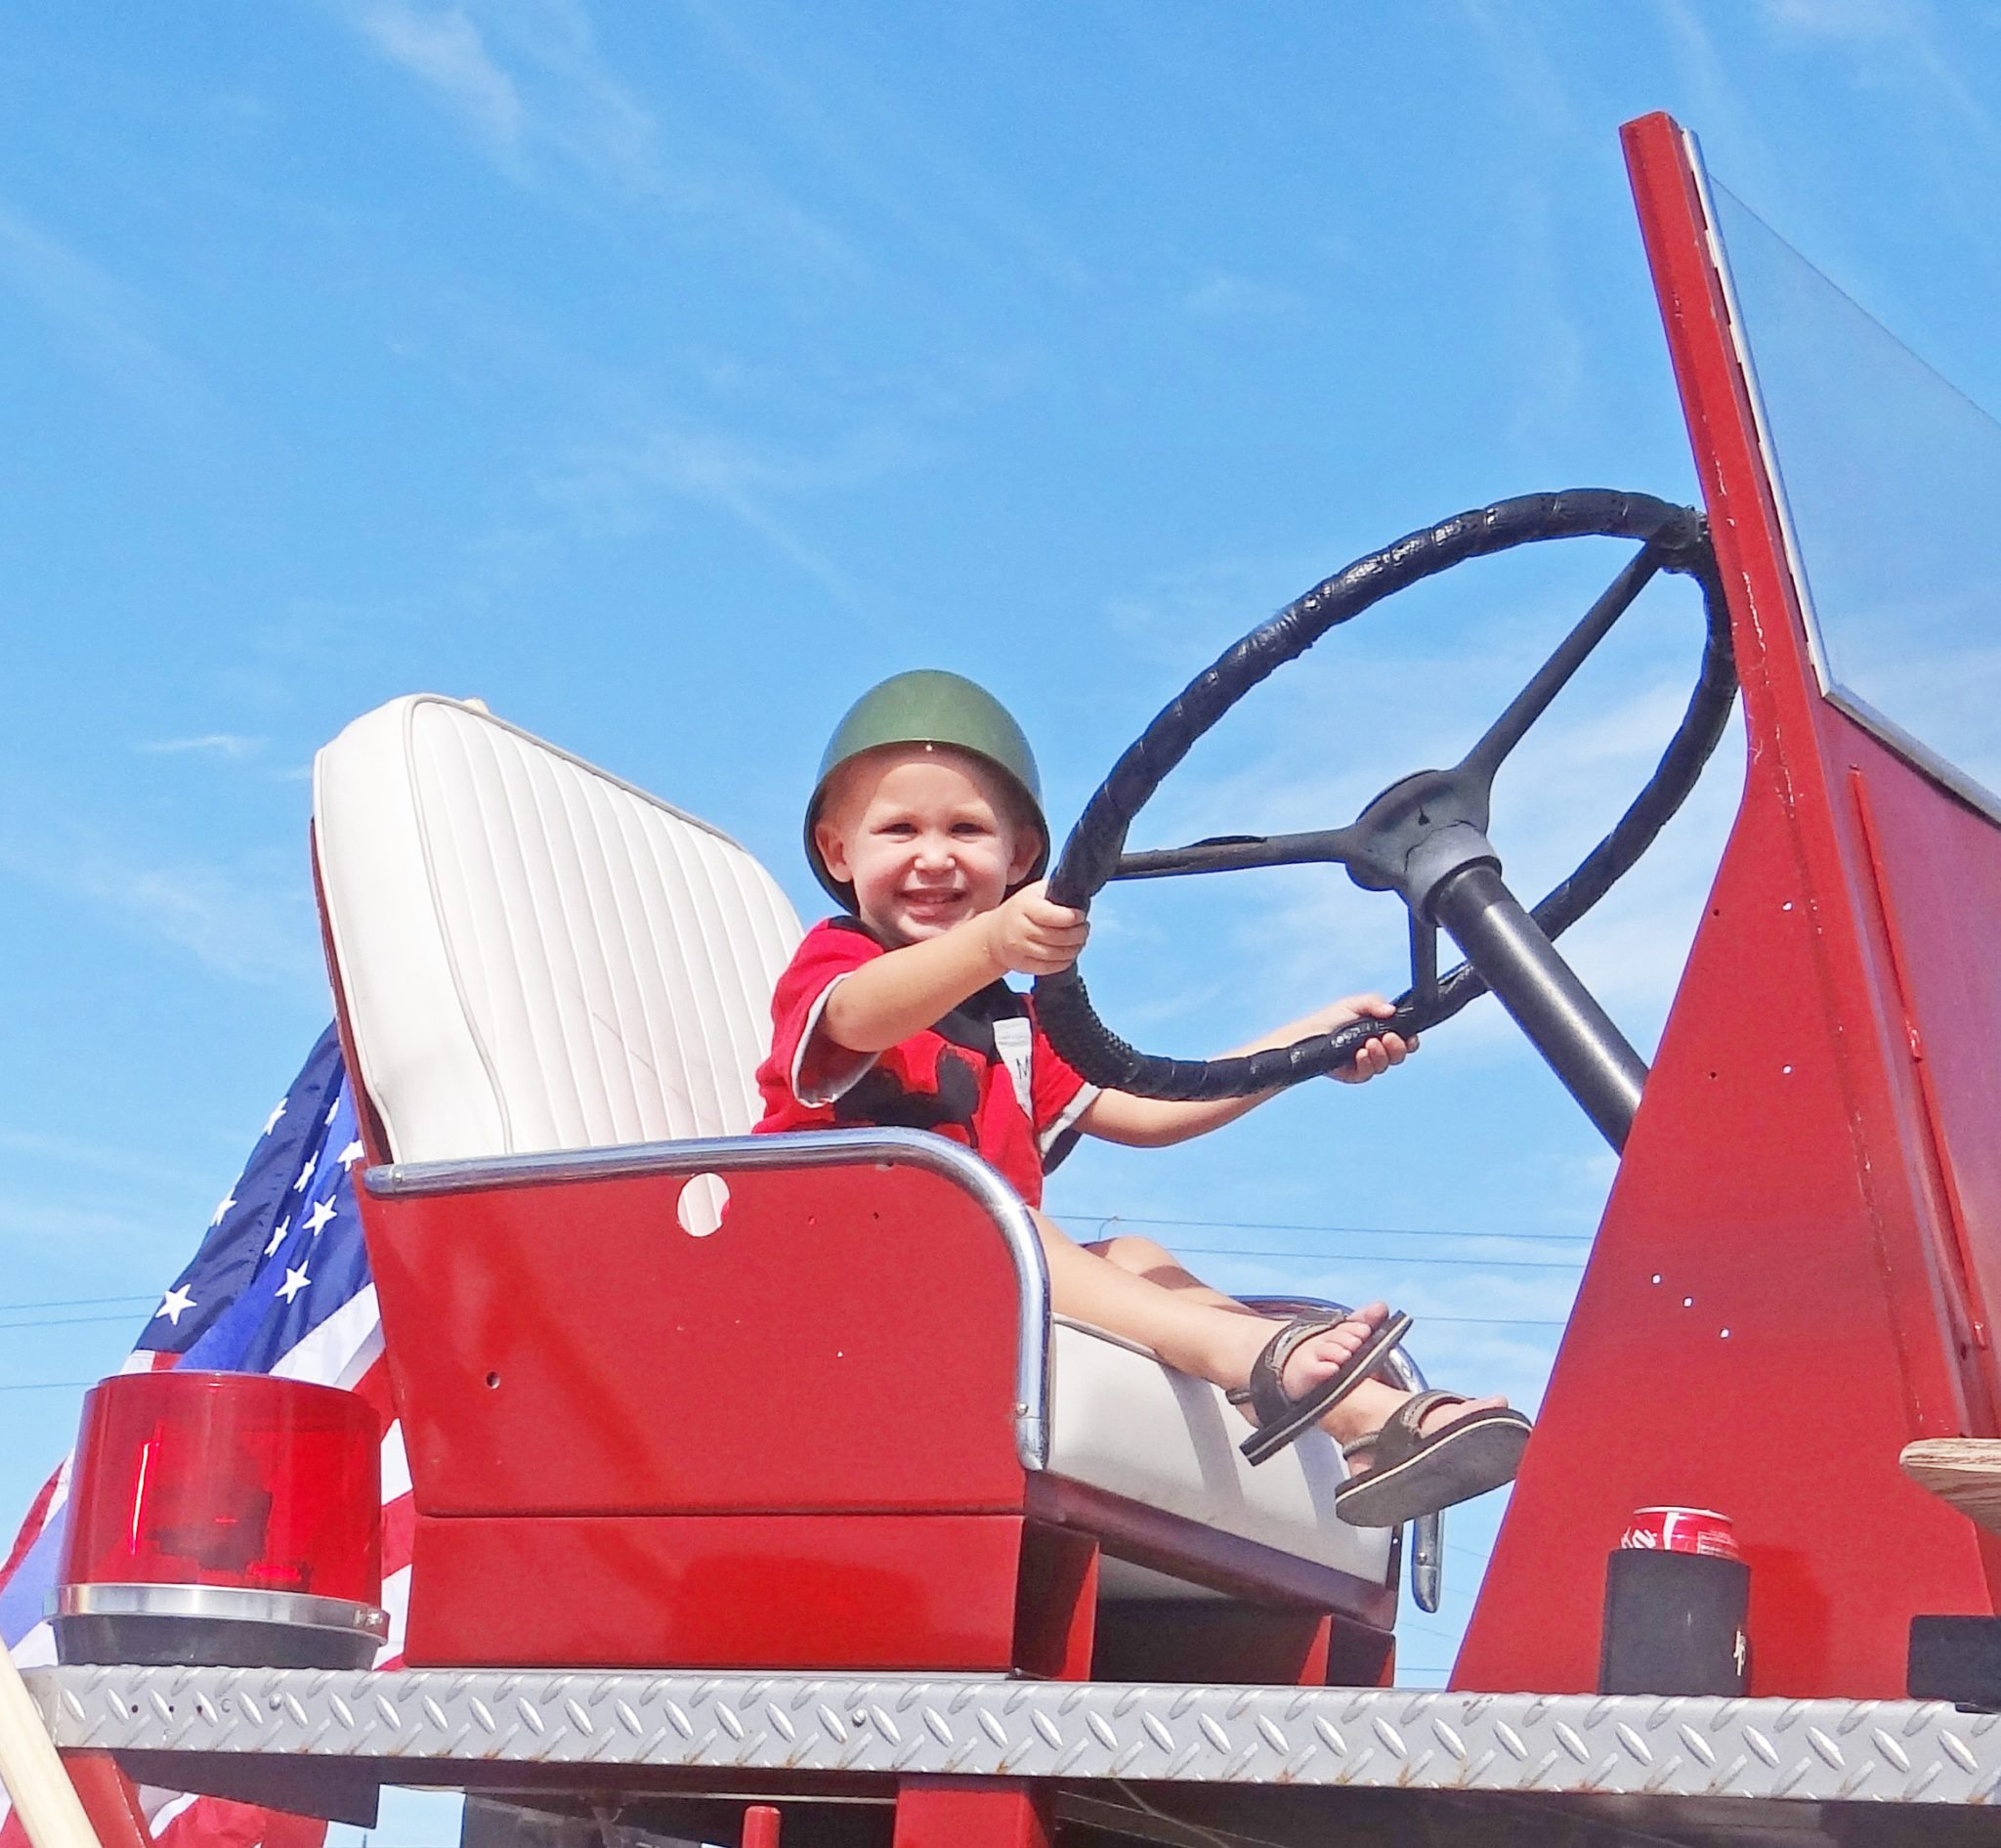 This little dude looks pretty happy at the wheel of the old fire truck.